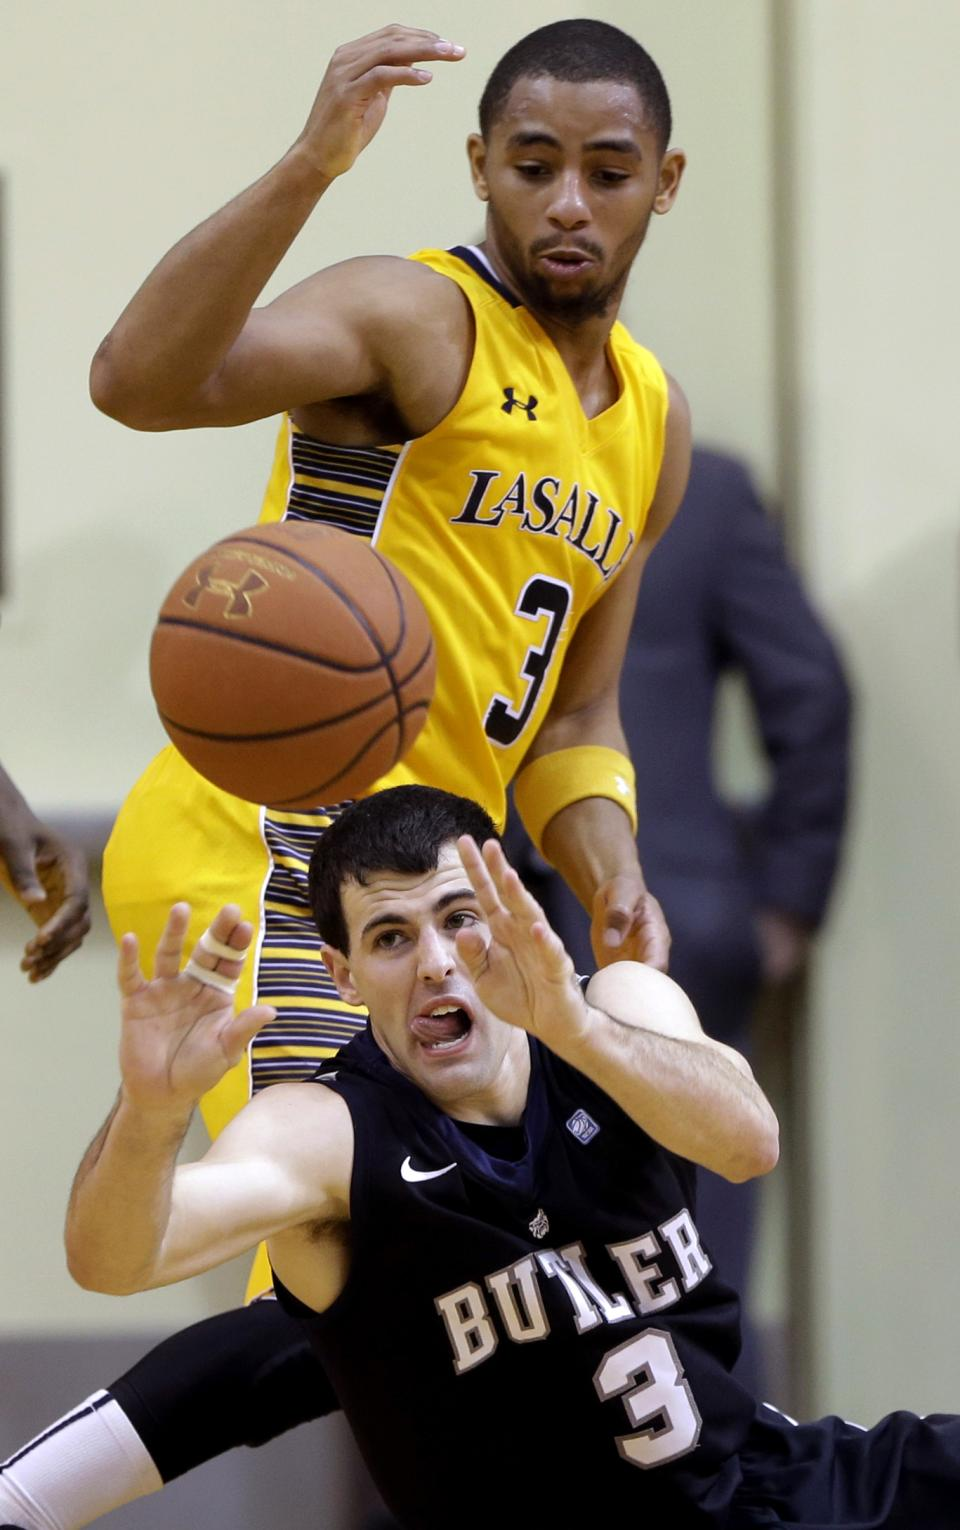 Butler's Alex Barlow, bottom, passes the ball under pressure from La Salle's Tyreek Duren during the second half of an NCAA college basketball game, Wednesday, Jan. 23, 2013, in Philadelphia. La Salle won 54-53. (AP Photo/Matt Slocum)